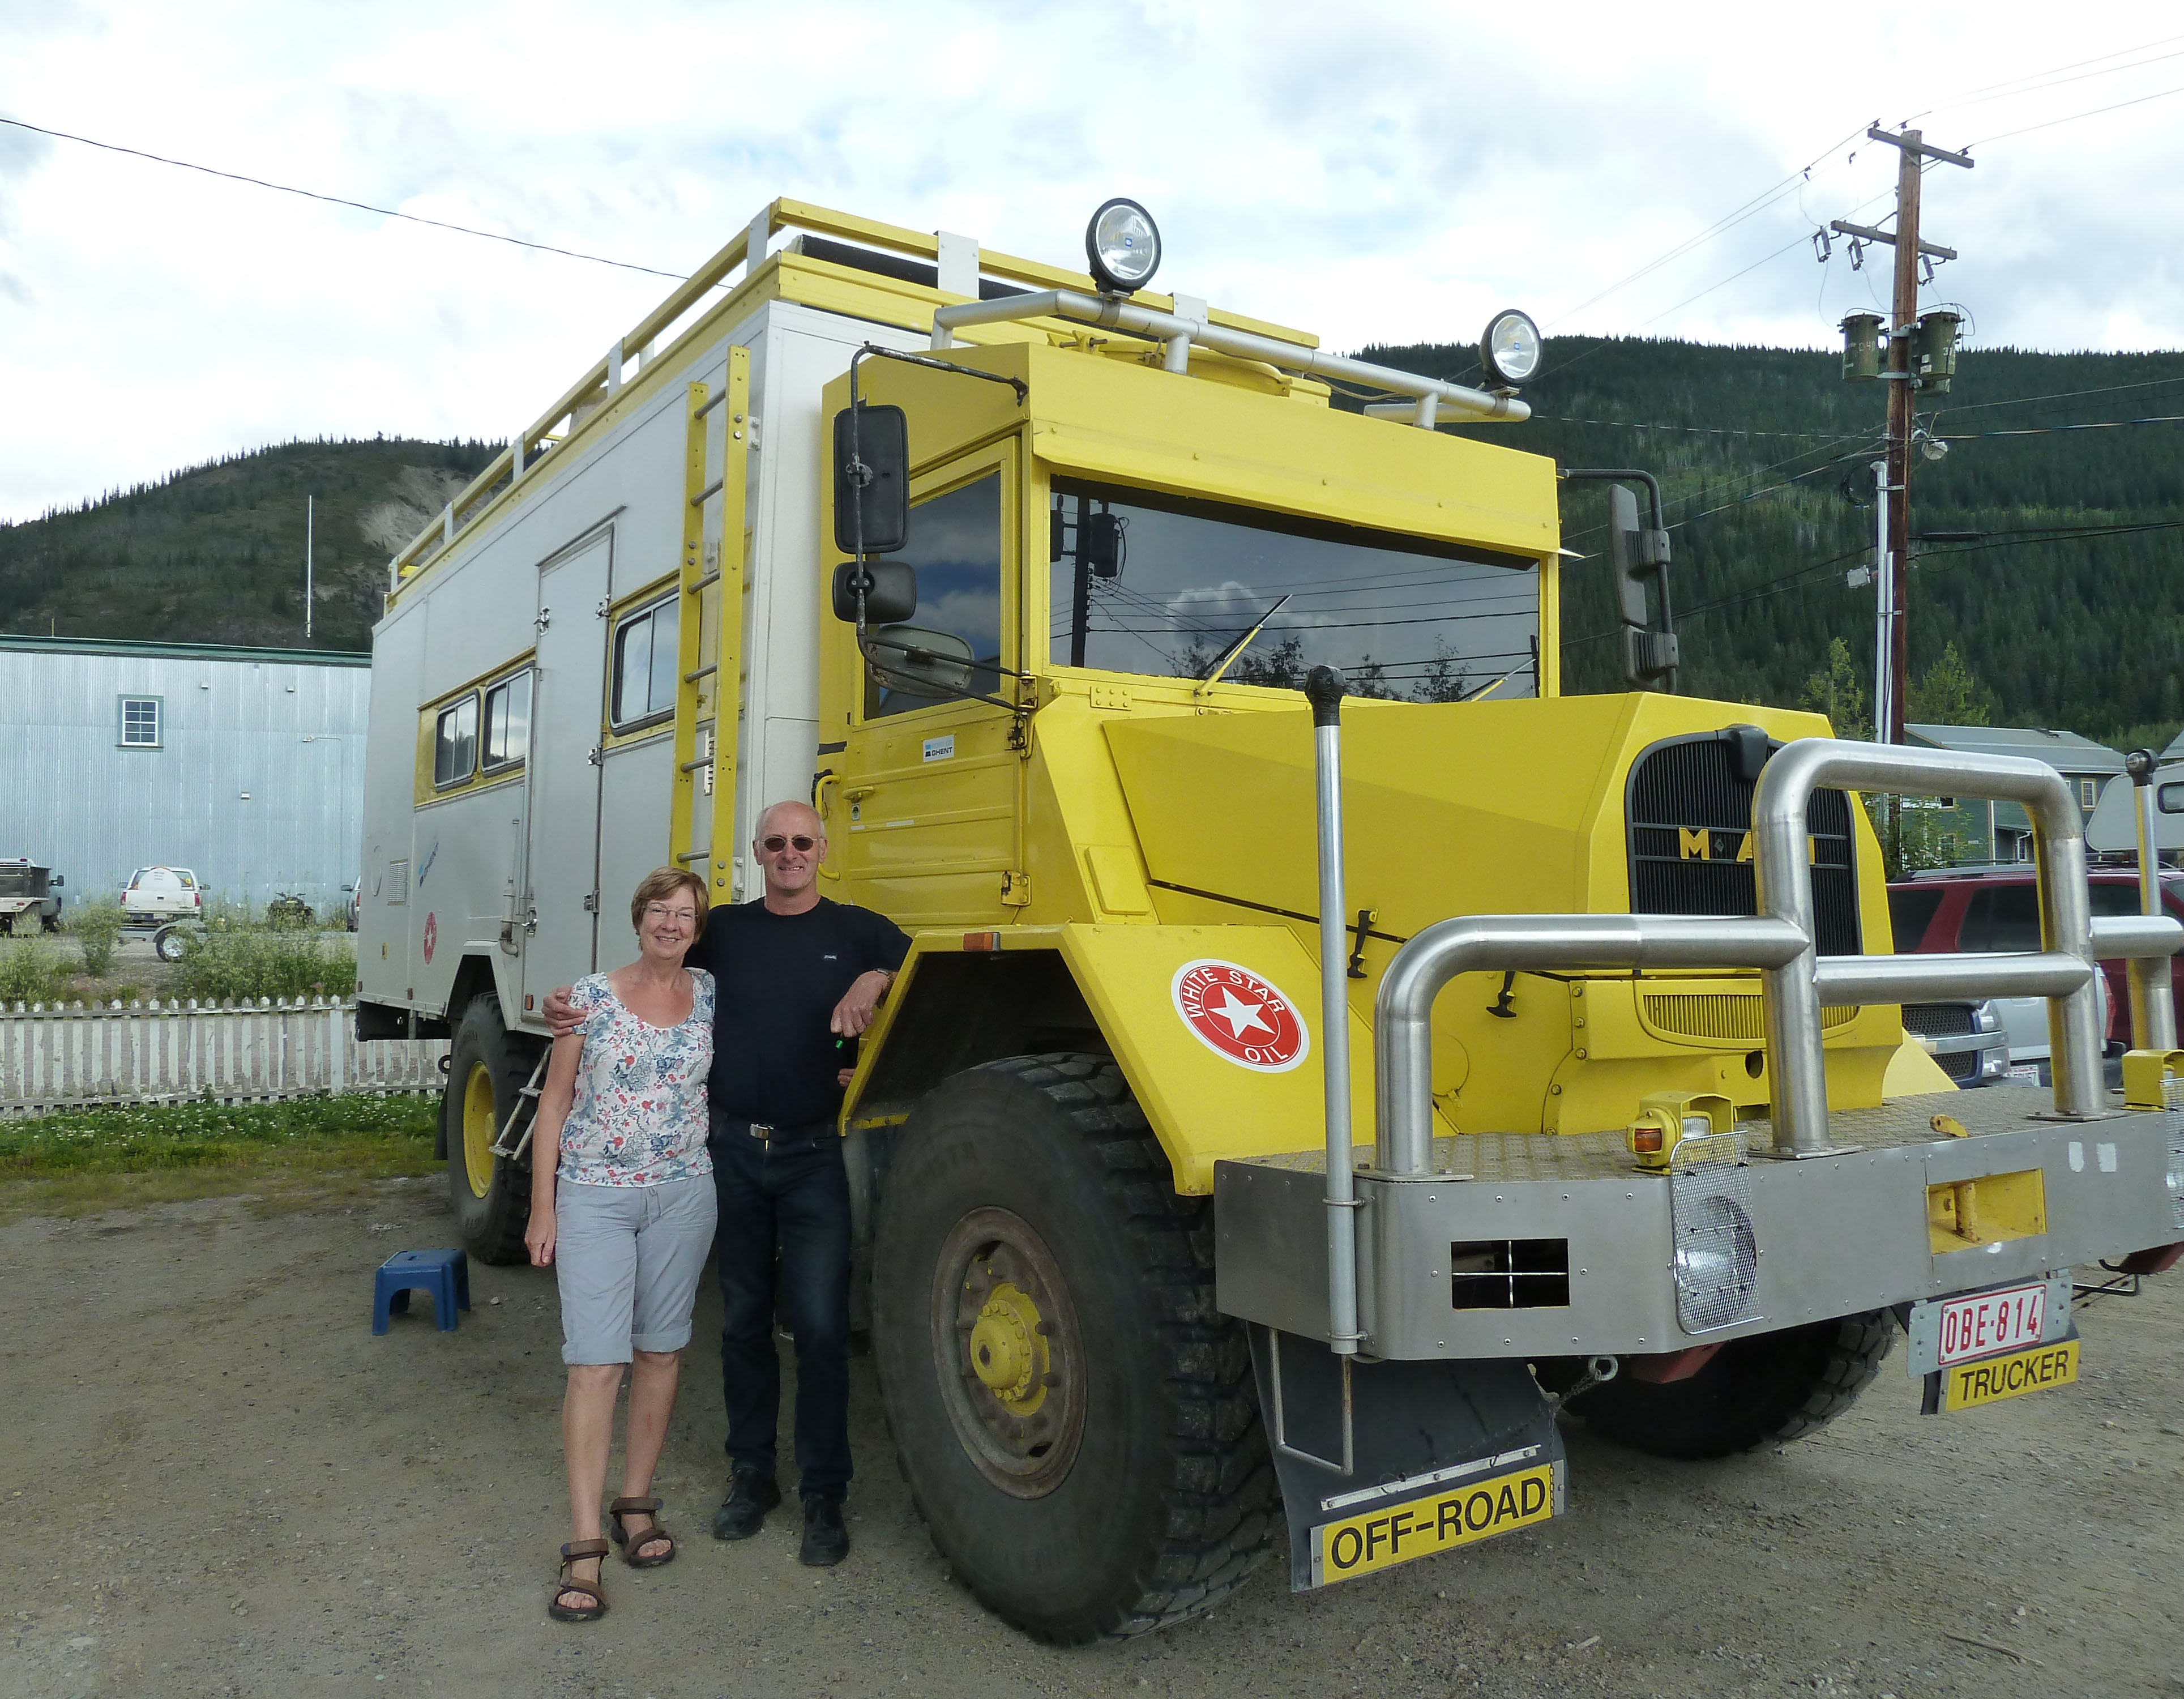 frans-and-martine-with-their-truck.jpg